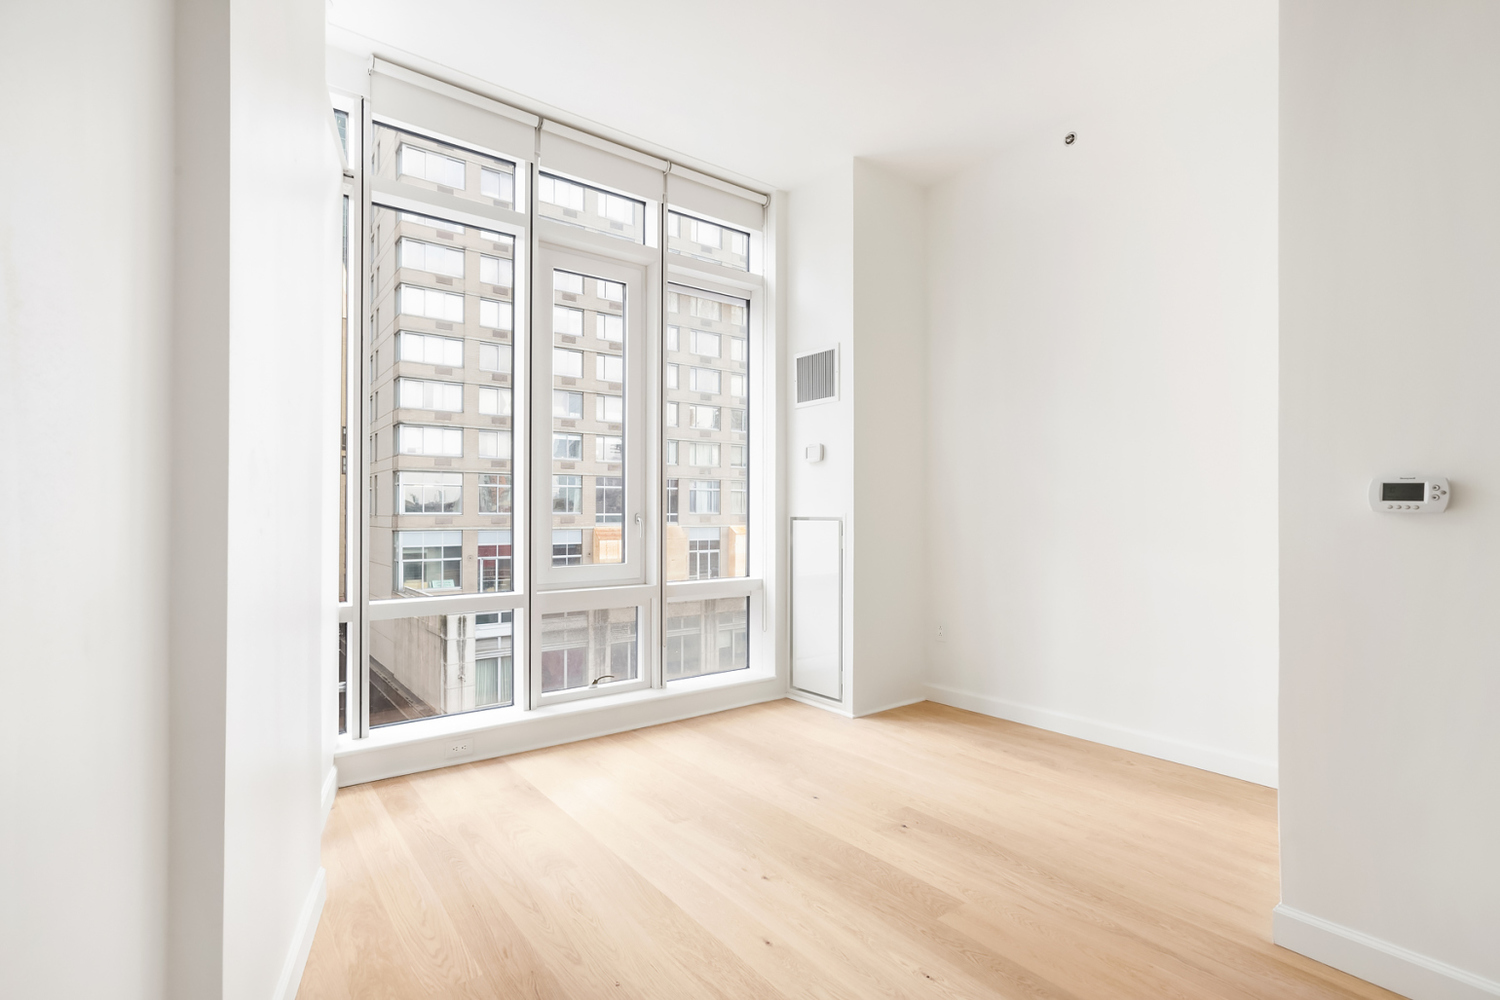 306 West 48th Street, Unit 5D Manhattan, NY 10036